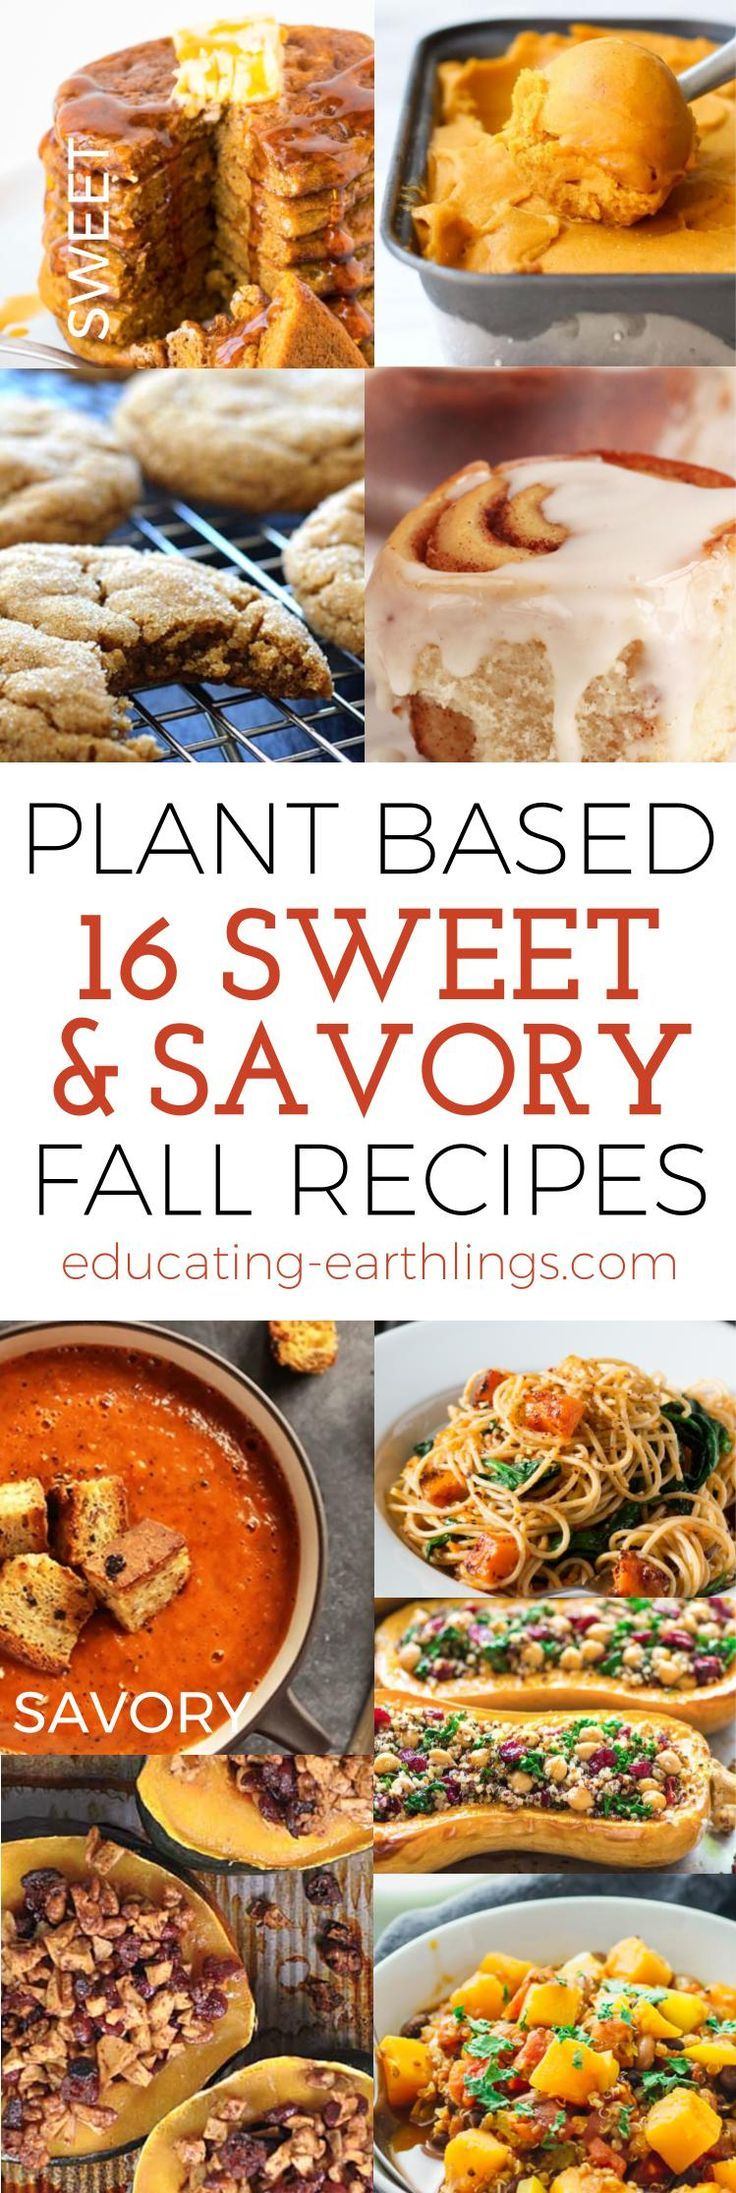 Sweet & Savory Vegan Fall Recipes